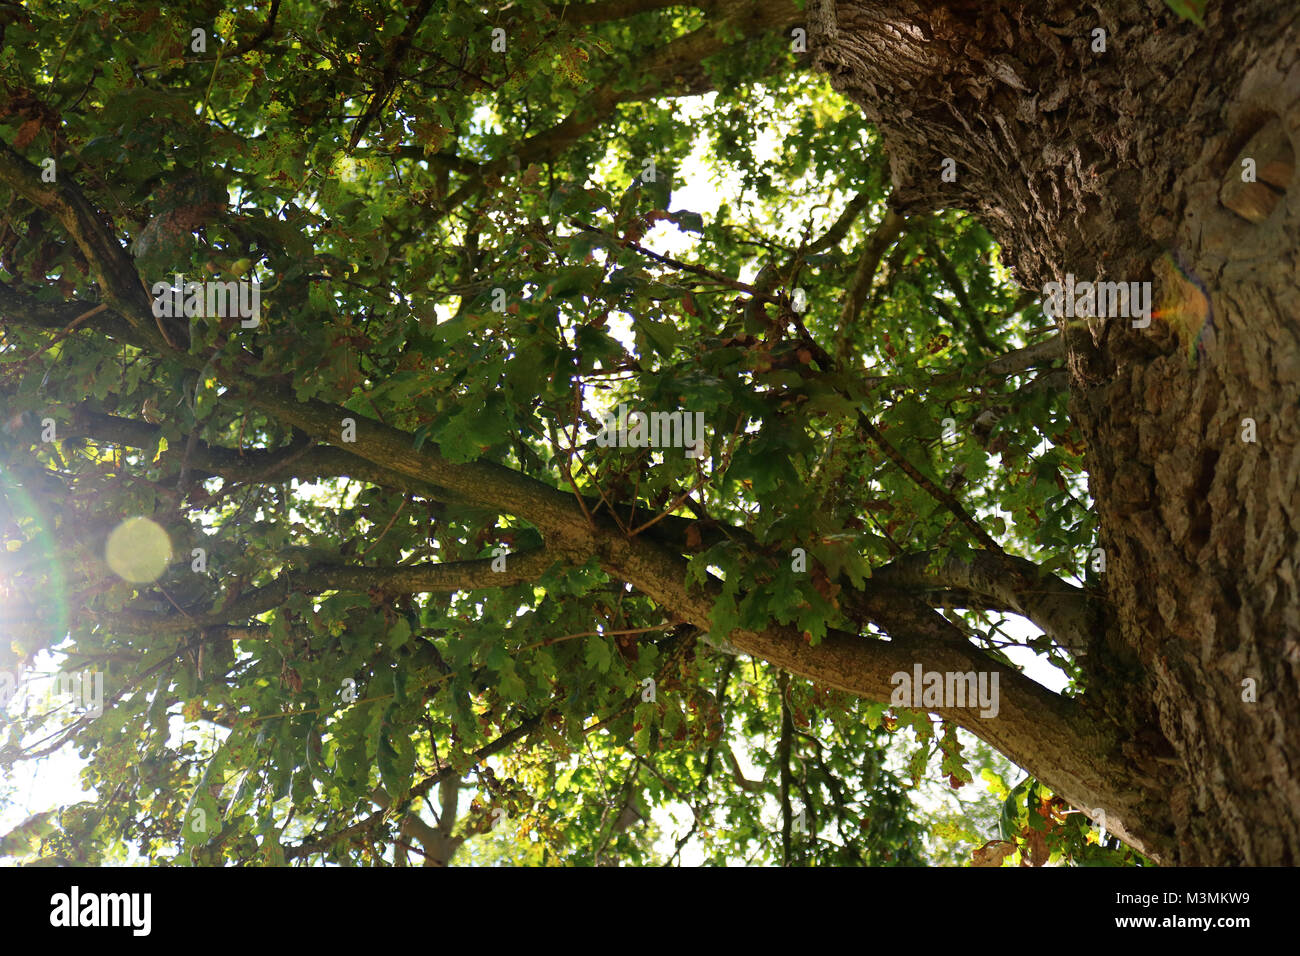 An old oak tree and lens flair. - Stock Image